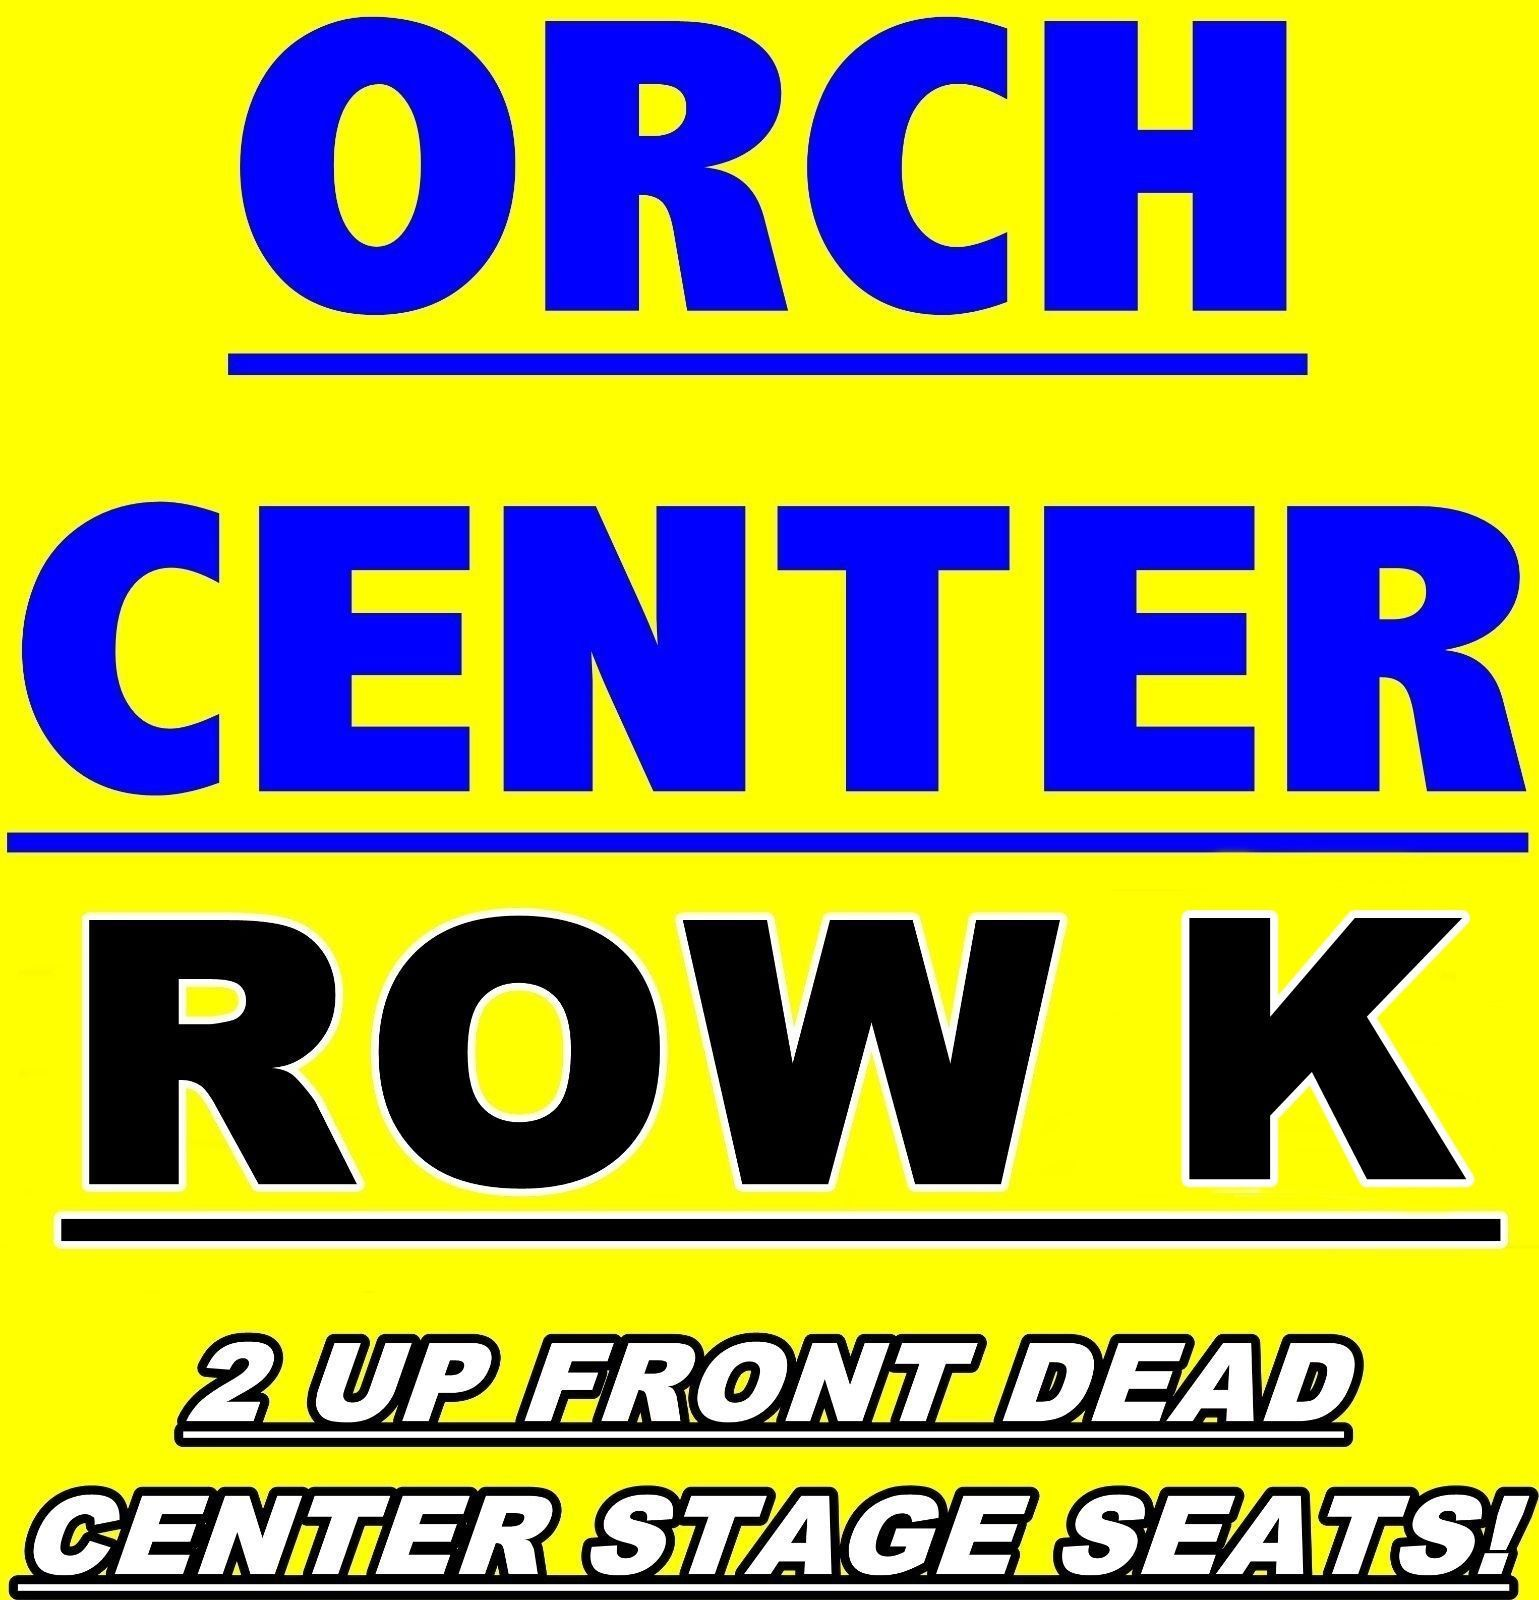 nice 2 TICKETS GABRIEL FLUFFY IGLESIAS 9/3 GRAND THEATER FOXWOODS CT ORCH CENTR ROW K   Check more at http://harmonisproduction.com/2-tickets-gabriel-fluffy-iglesias-93-grand-theater-foxwoods-ct-orch-centr-row-k/